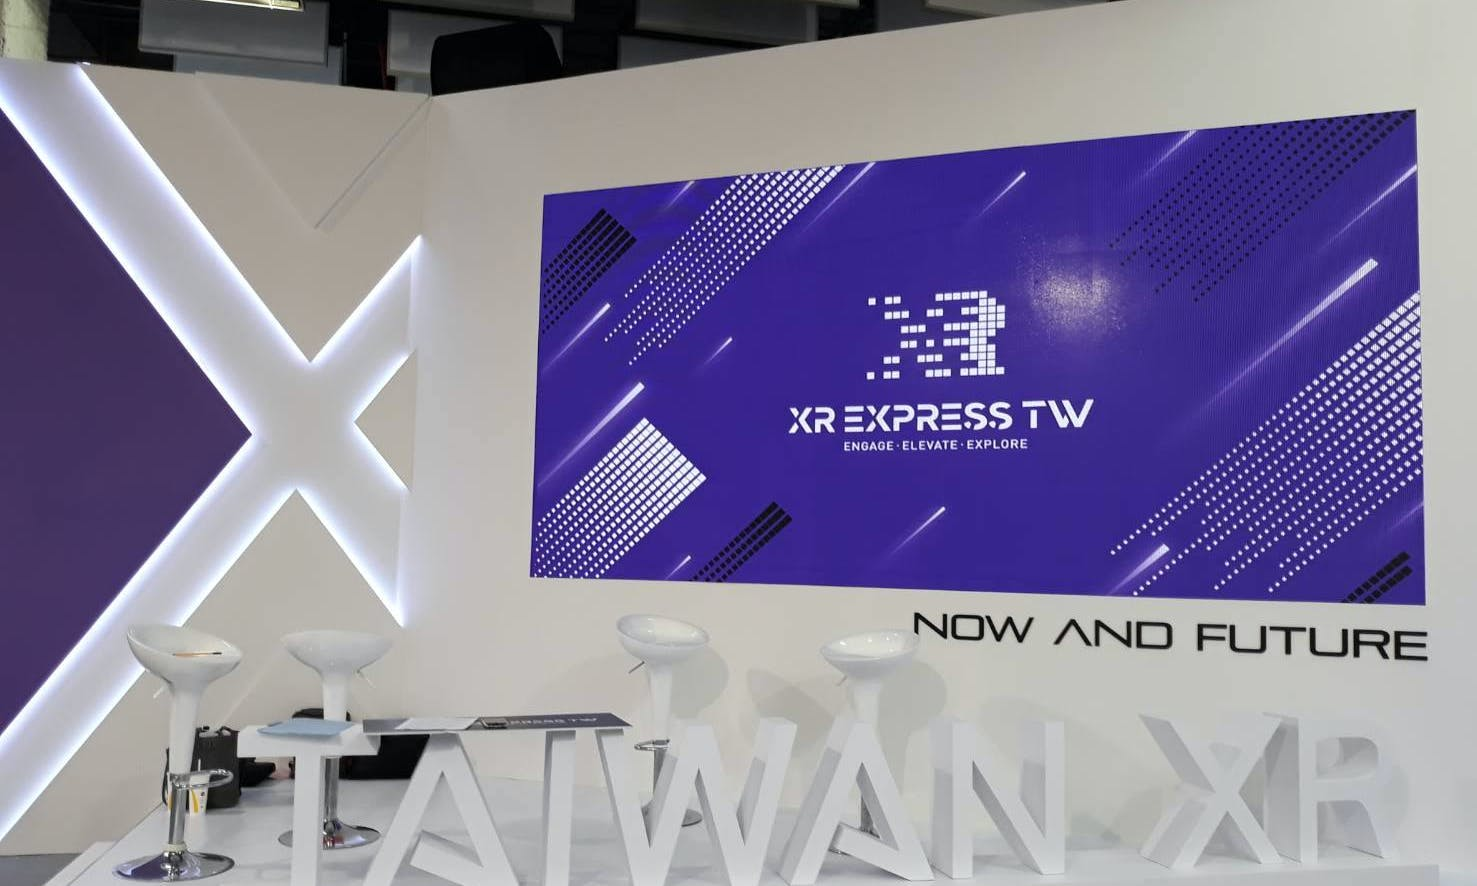 XR EXPRESS TW Pavilion Offers InnoVEX Unprecedented Blend of AR, VR and MR Experiences